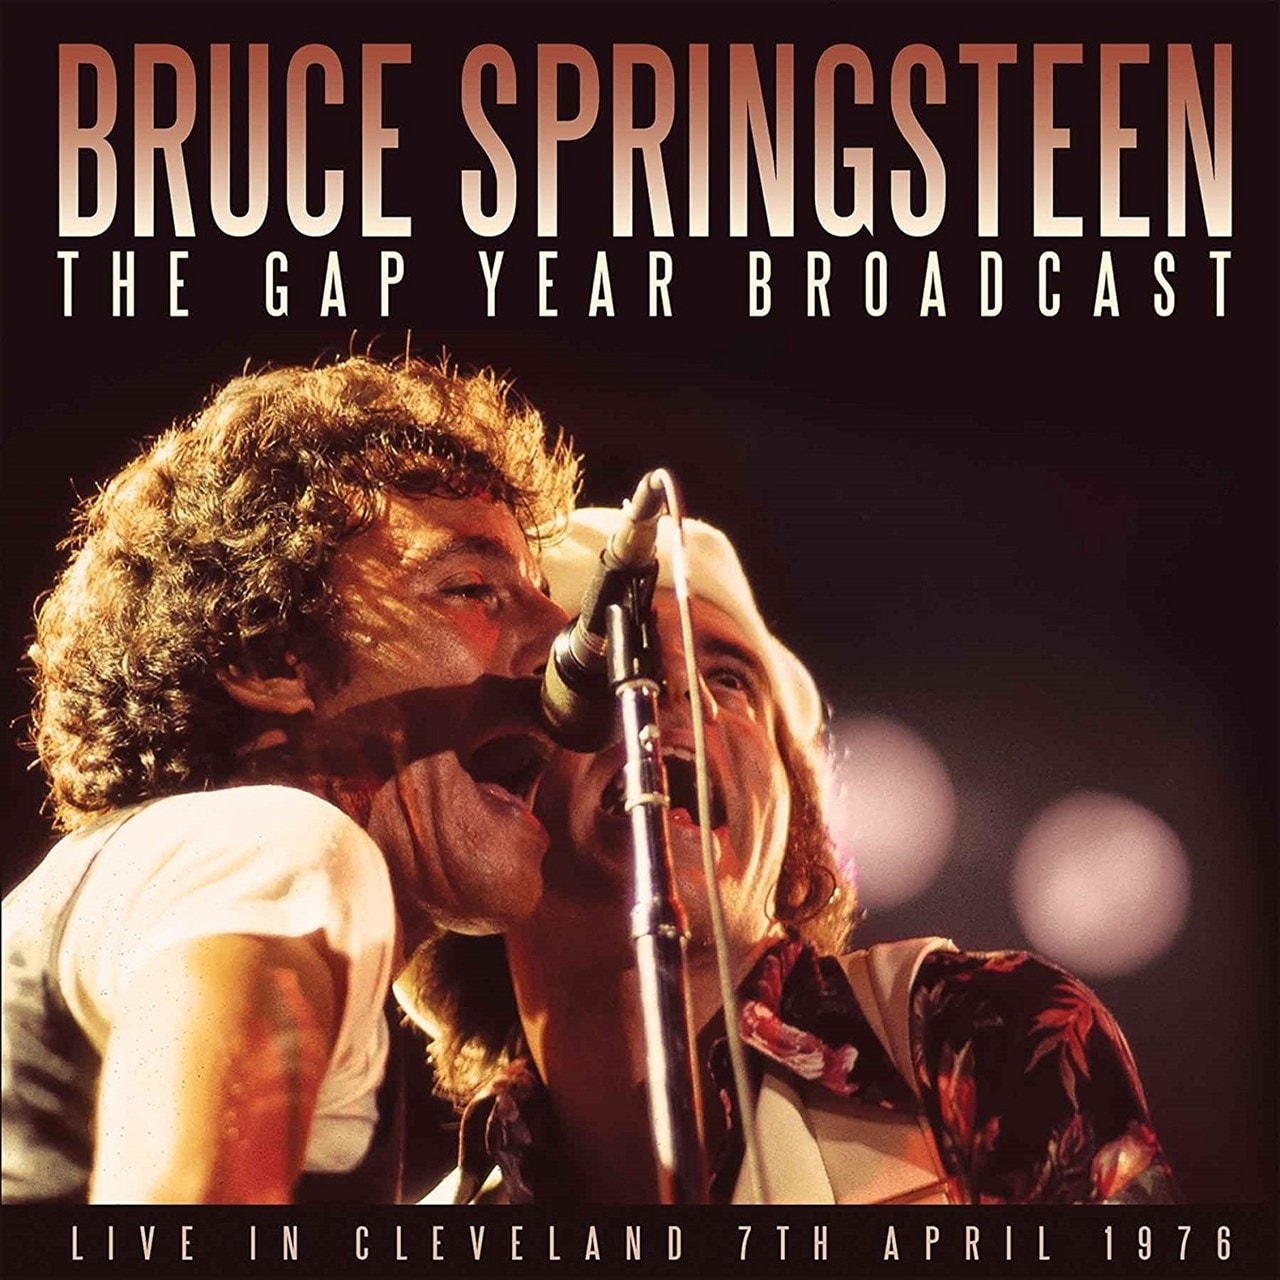 The Gap Year Broadcast: Live in Cleveland 7th April 1976 - 1